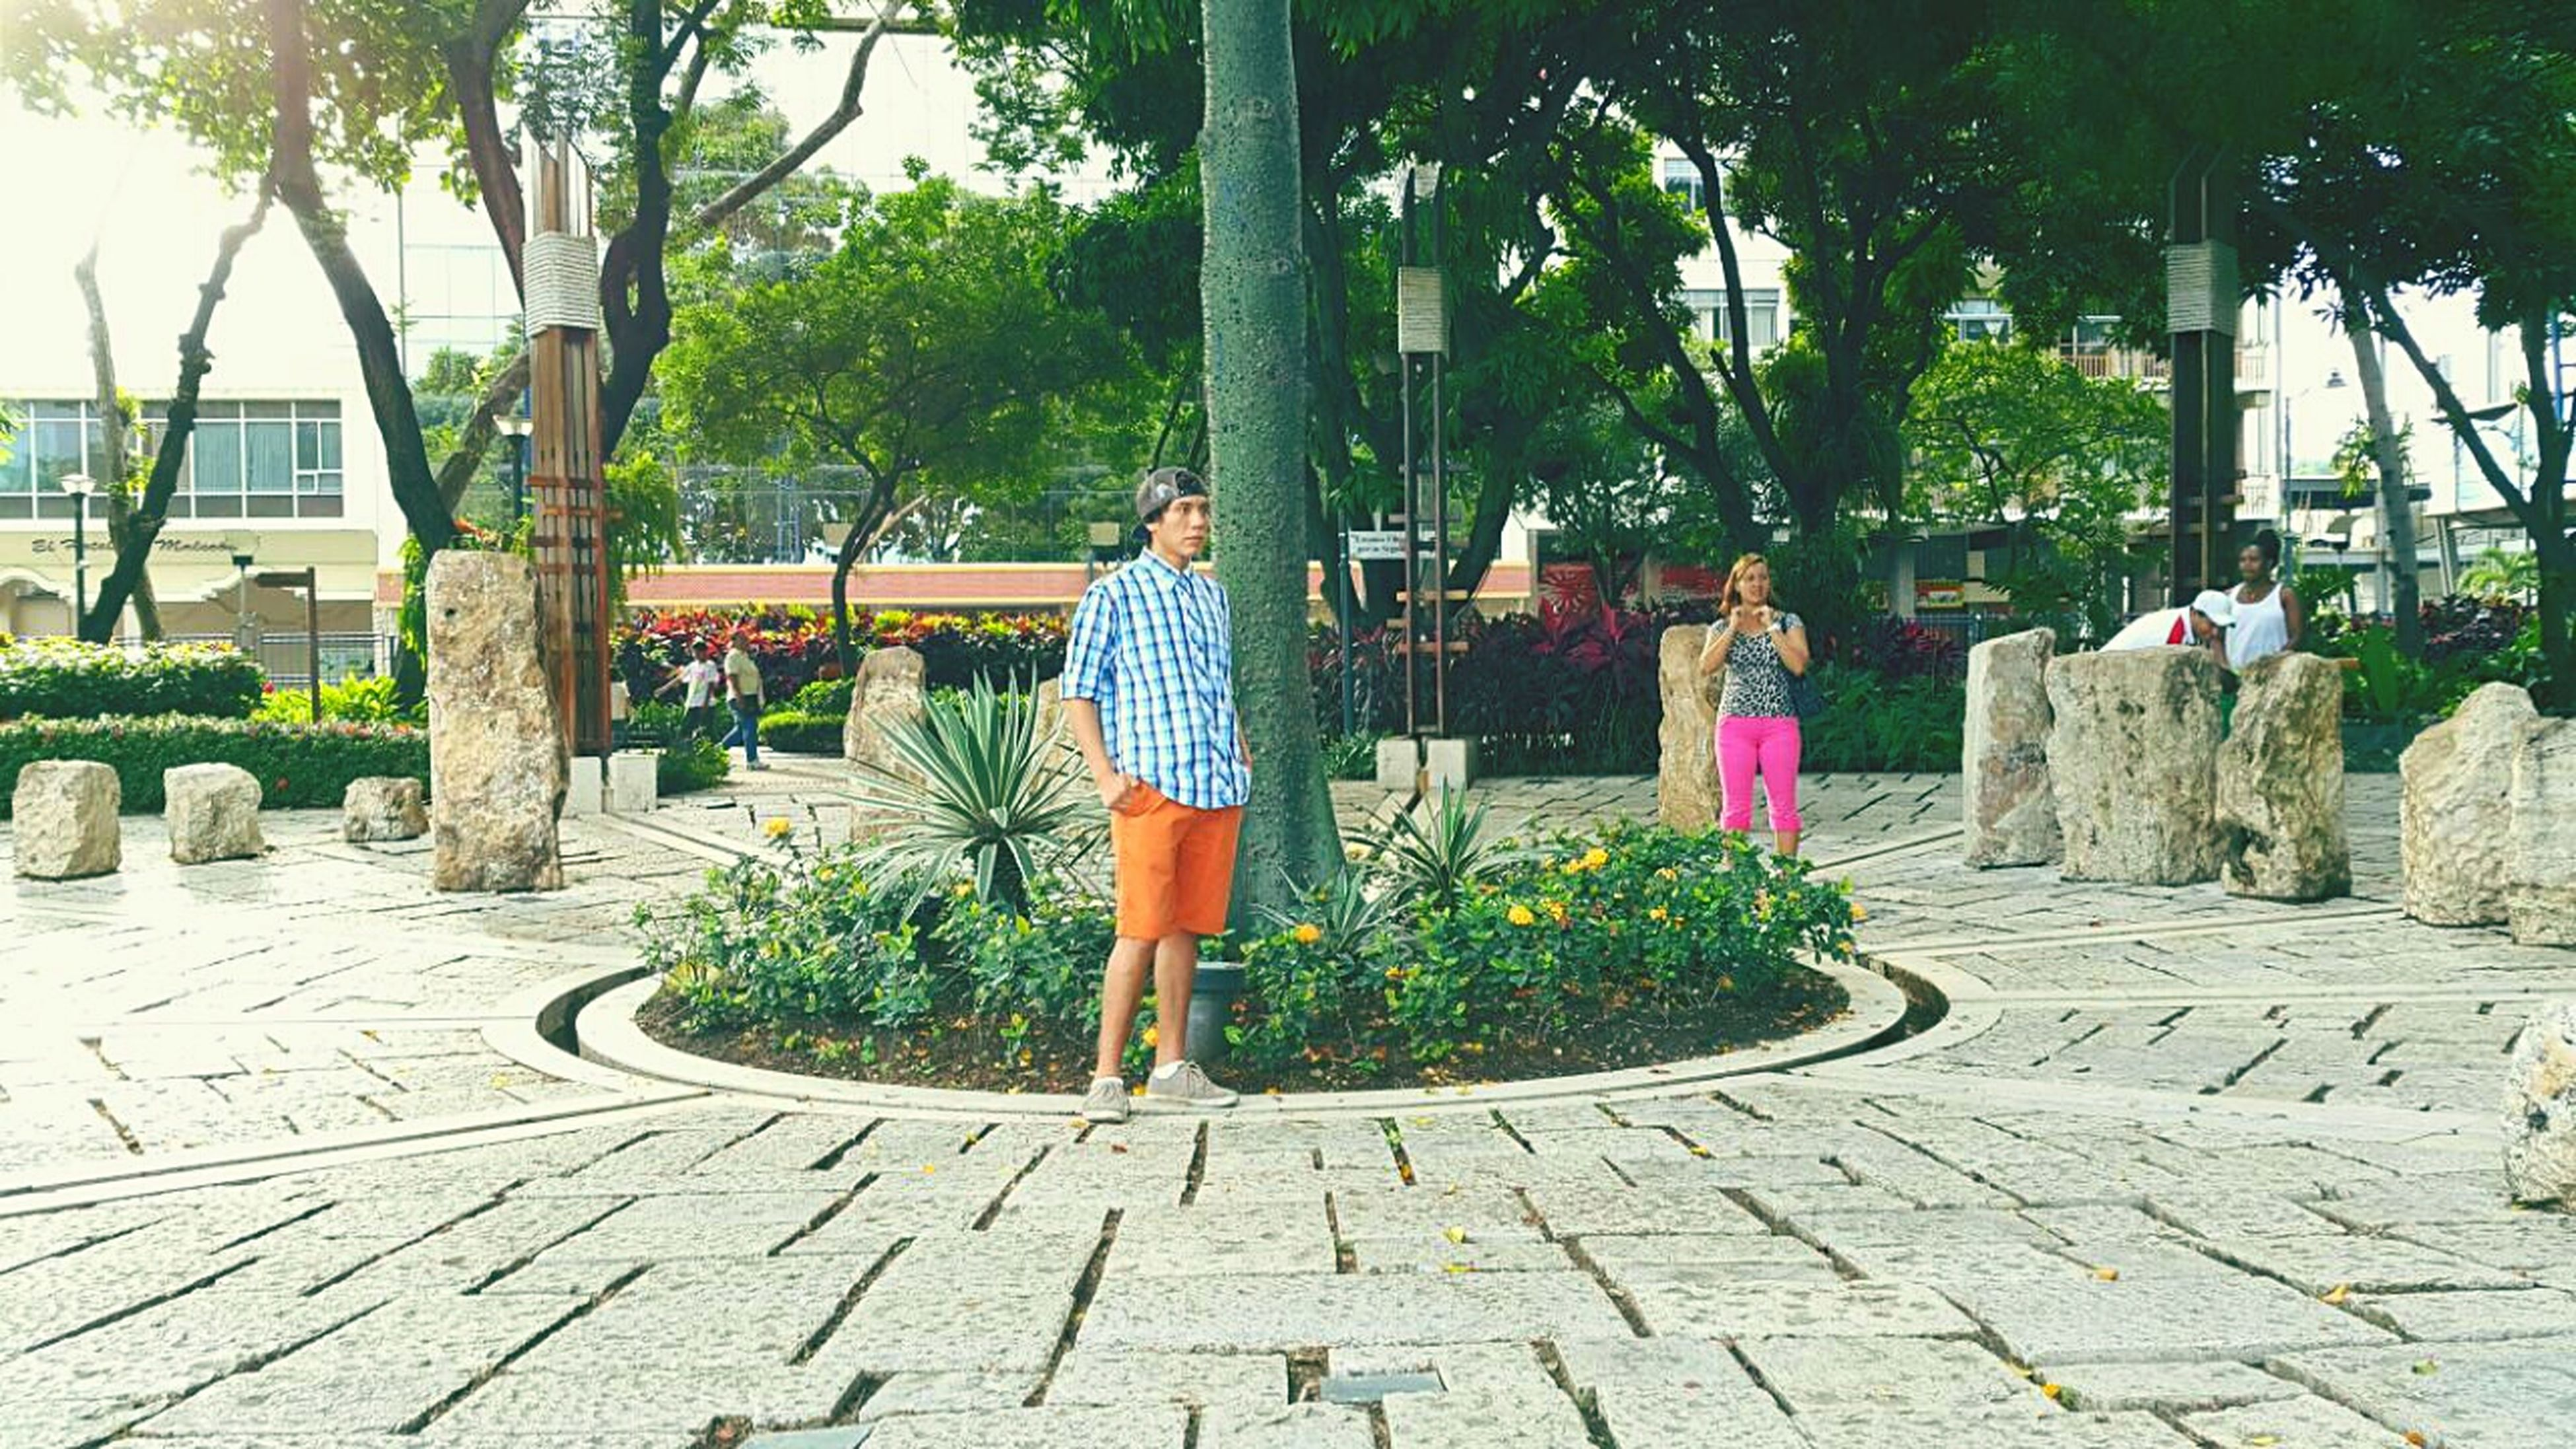 tree, sidewalk, street, potted plant, palm tree, footpath, growth, plant, outdoors, incidental people, day, sunlight, cobblestone, green color, park - man made space, paving stone, road, building exterior, chair, walkway